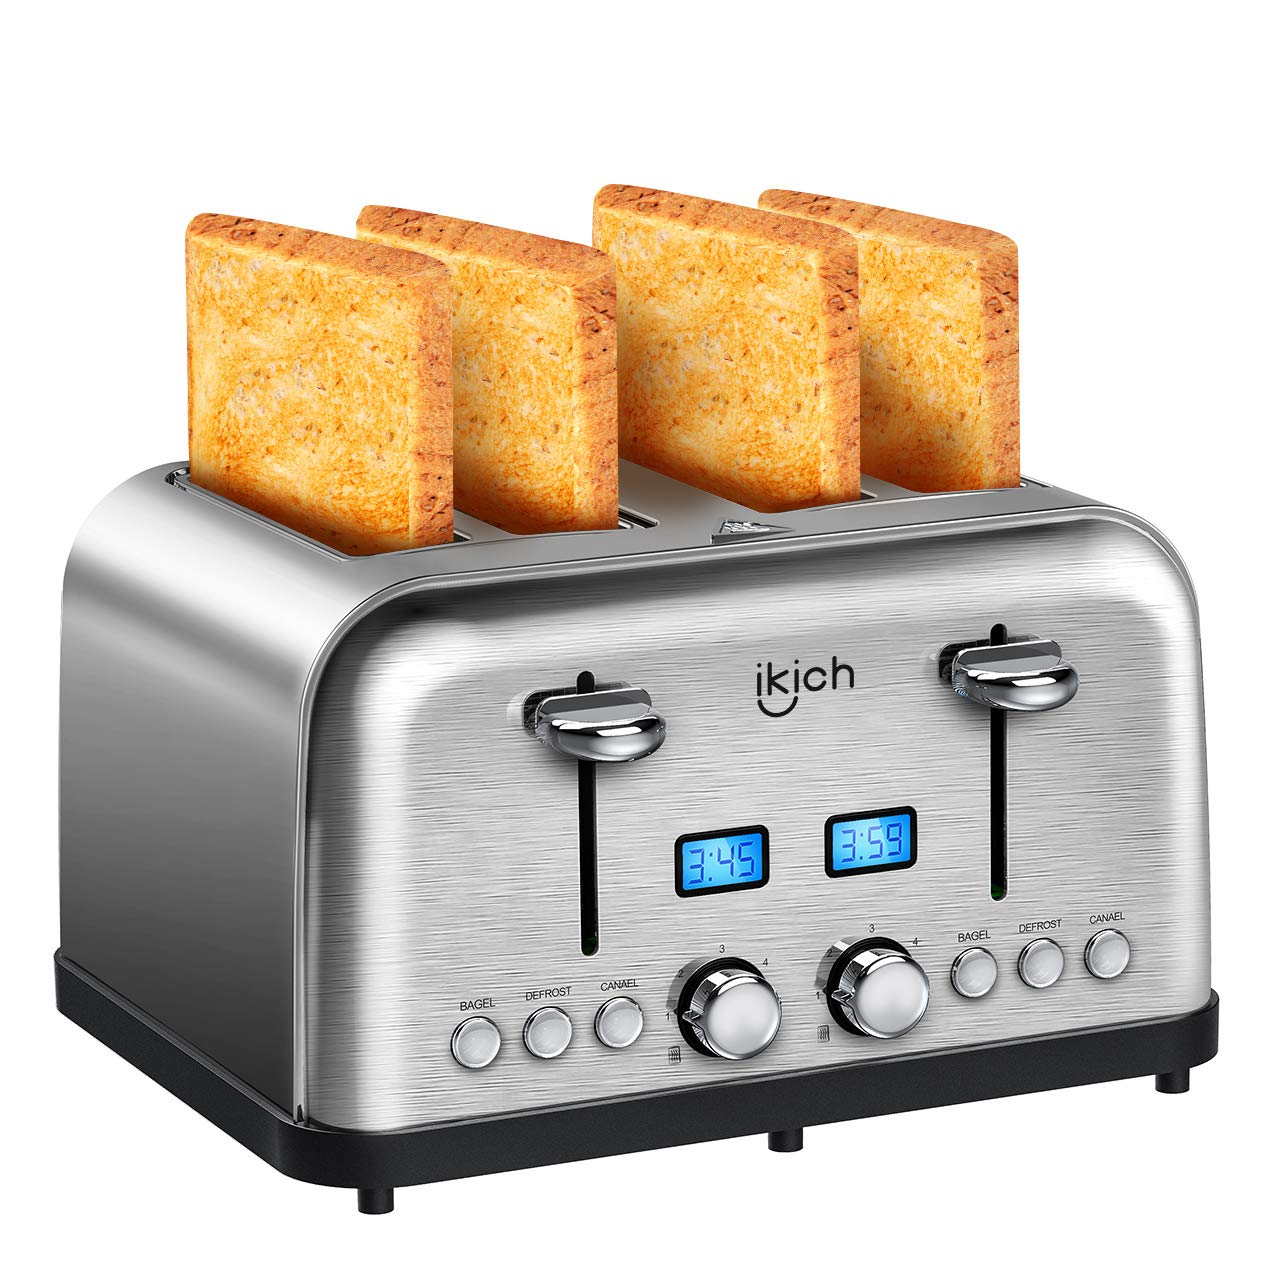 4 Slice Toaster, IKICH Best Rated Prime Toaster Stainless Steel [LCD Countdown] Toasters(6 Bread Shade Settings, Bagel/Defrost/Reheat/Cancel Function, 4 Slots, Removable Crumb Tray, 1500W, Silver) by IKICH